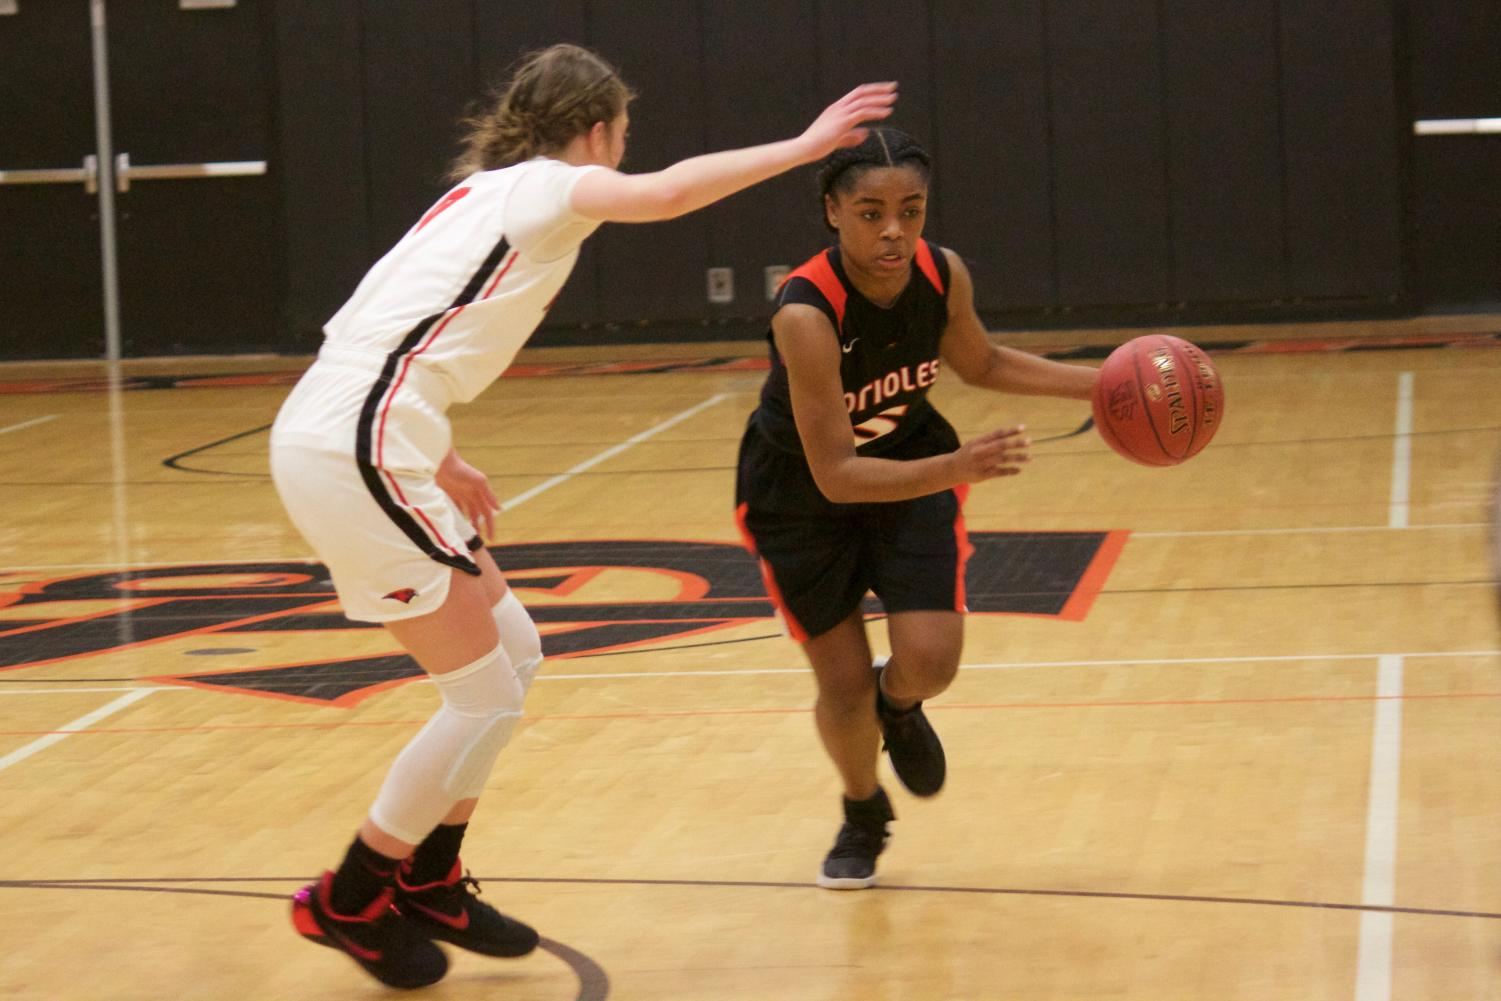 Senior captain Kamil Mayfield drives to the basket against Minnehaha Academy on Dec. 15. The Orioles lost 56-68.